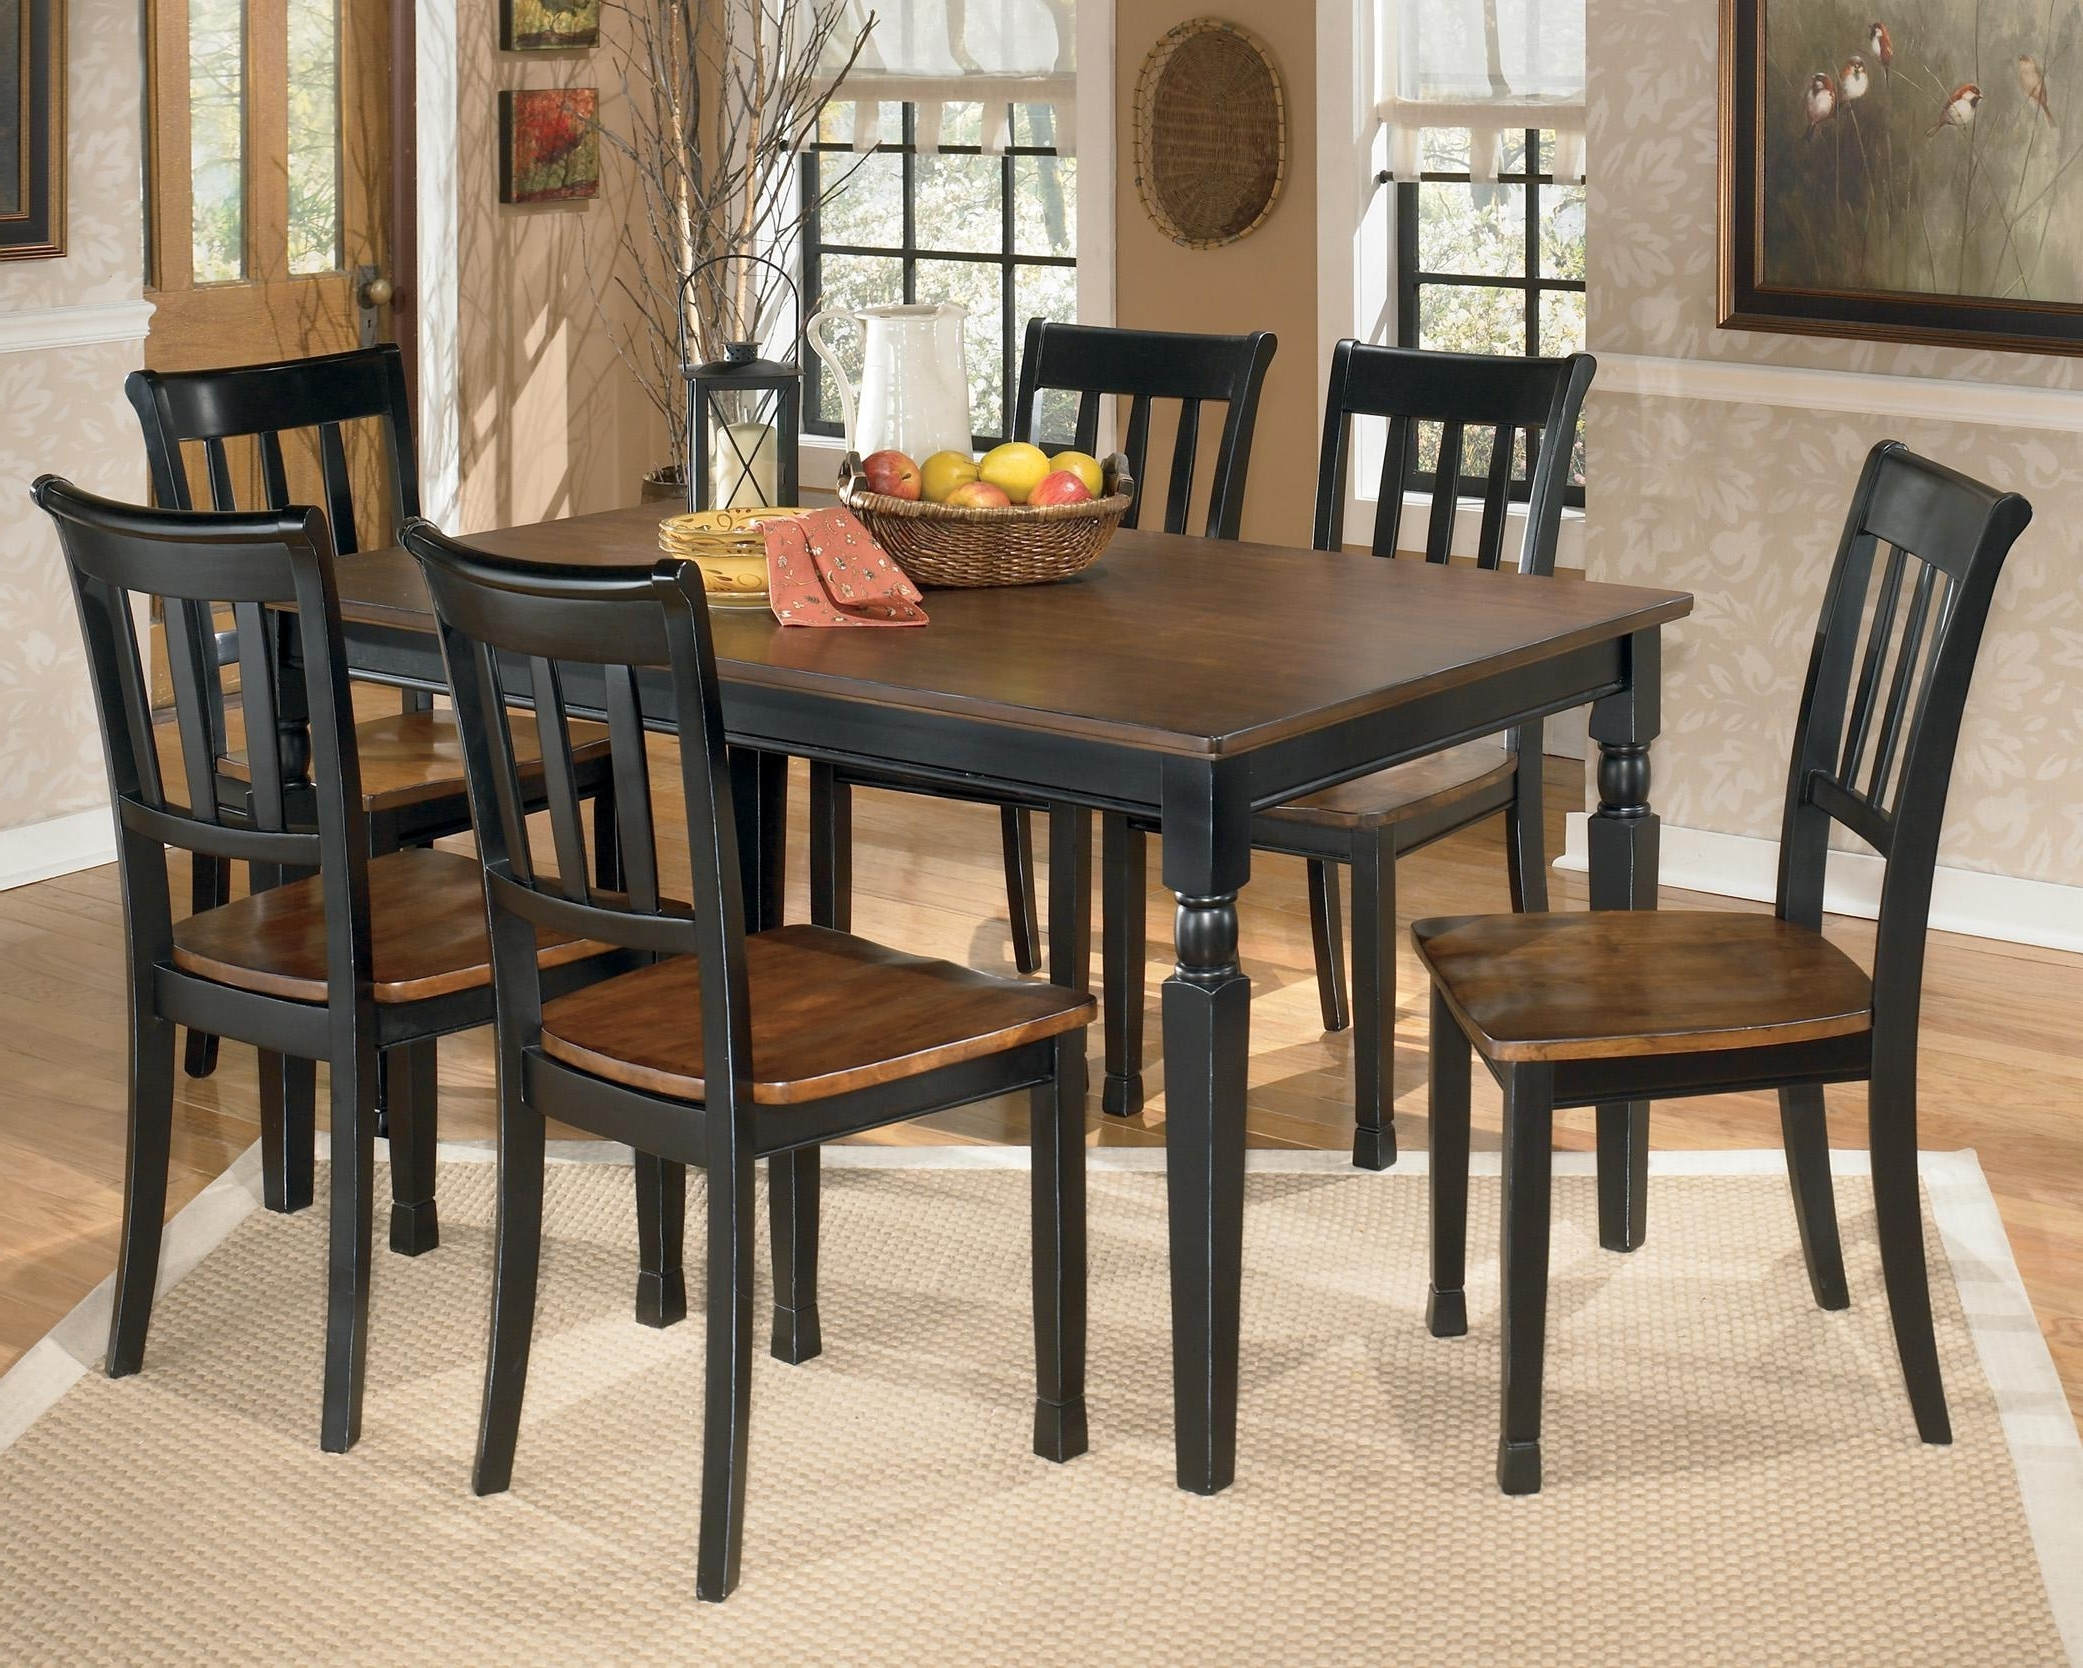 Rectangular Dining Tables Sets For Well Liked Signature Designashley Owingsville 7 Piece Rectangular Dining (View 7 of 25)